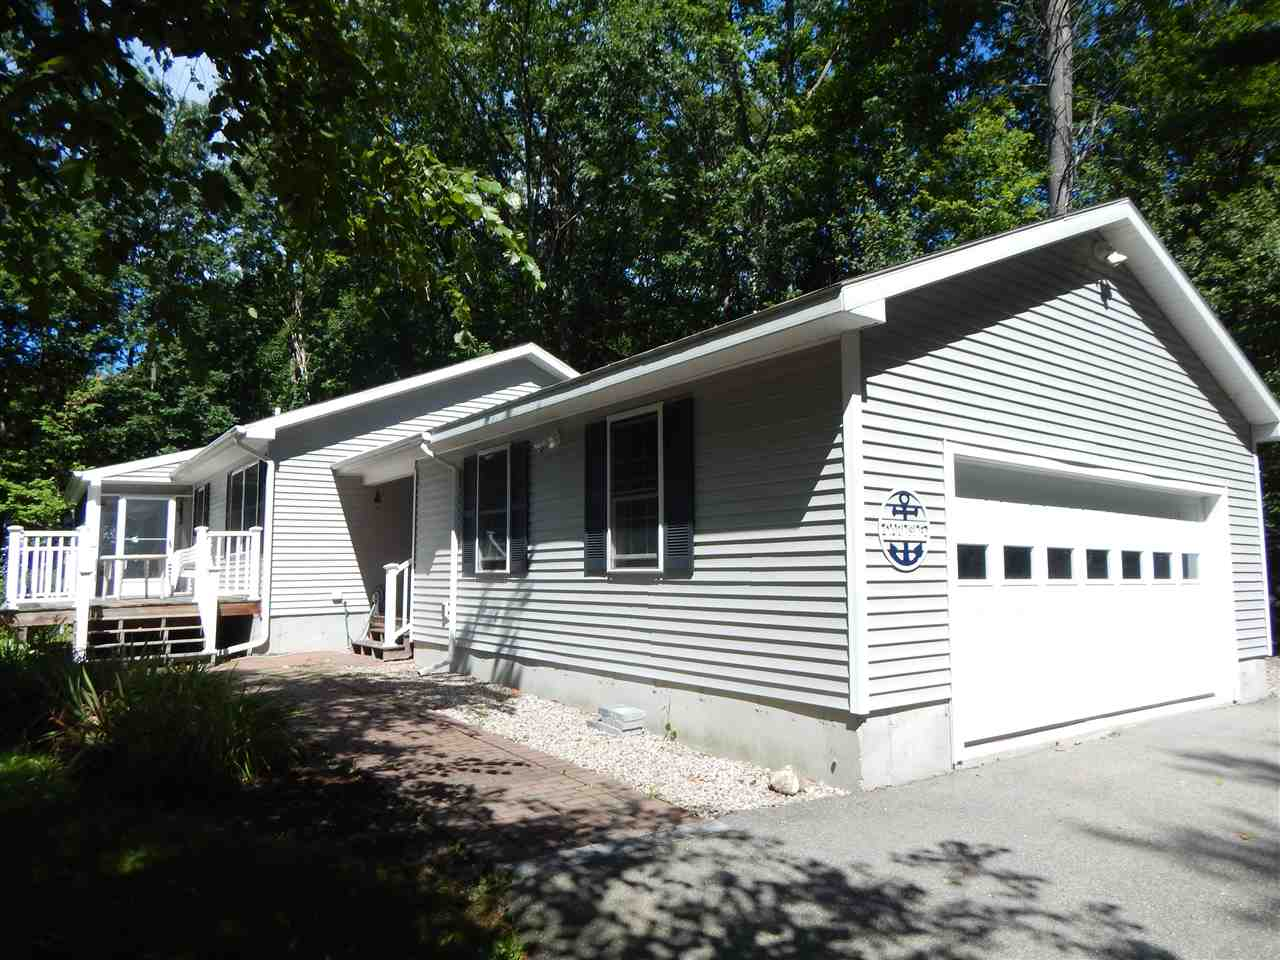 Photo of 6 Dudley Road Wolfeboro NH 03894